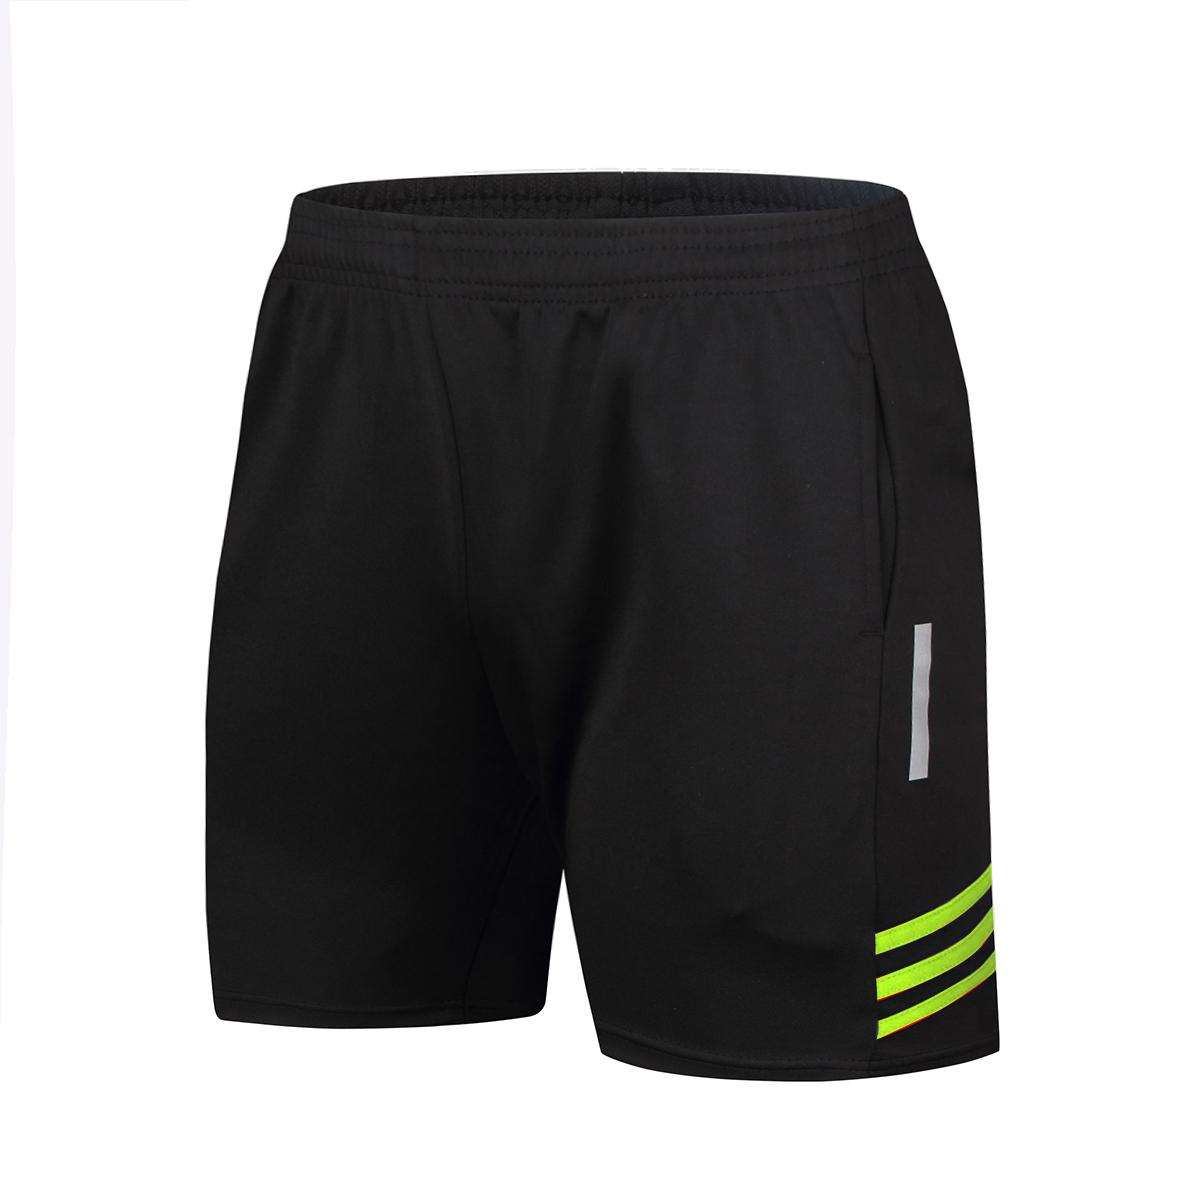 81ff1b4421 Leisure Sports Shorts Men Quick-Drying Fitness Training Running Loose Basketball  Shorts Short Night Running